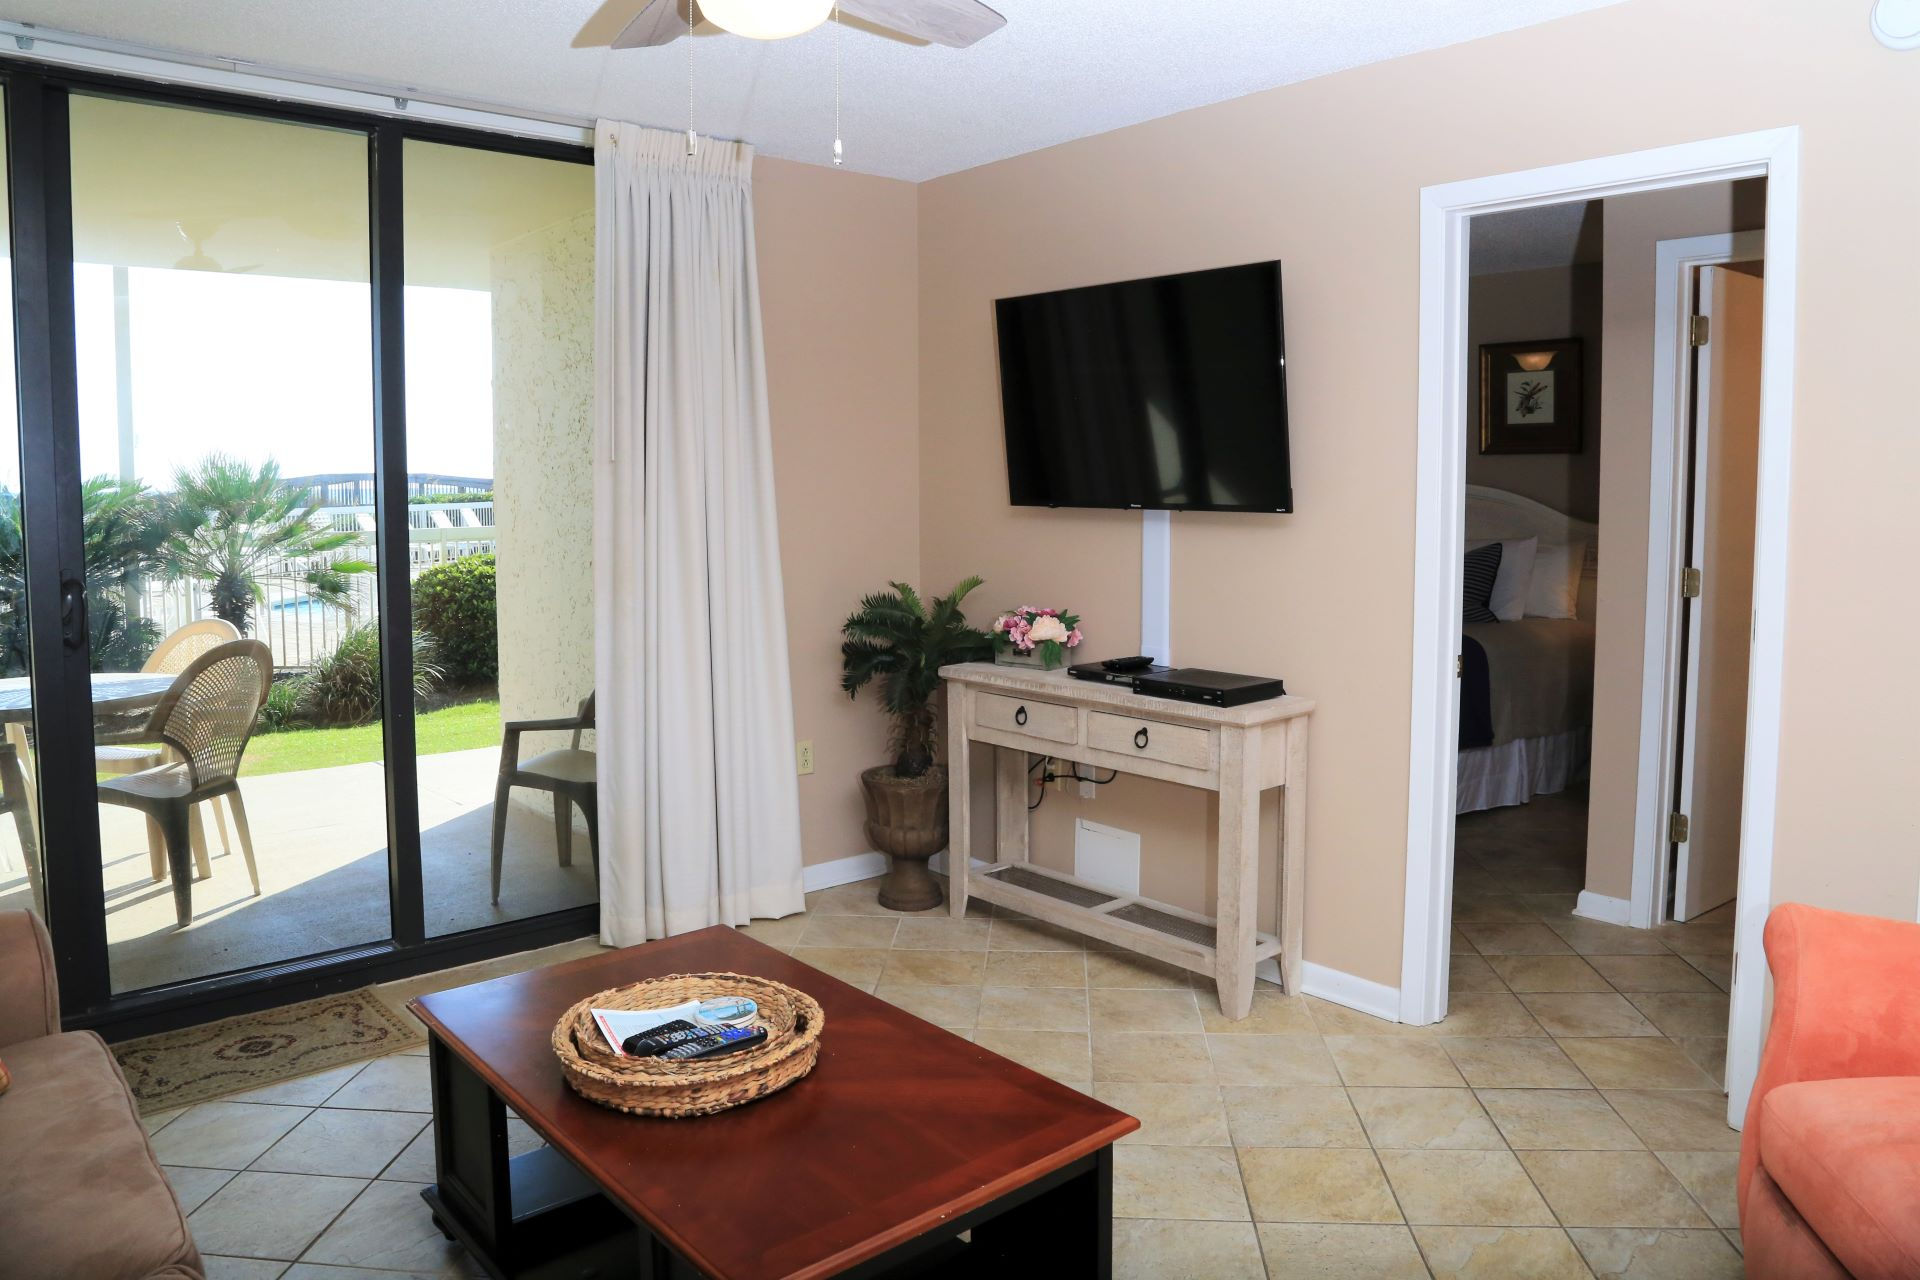 The living room has direct access to the private balcony.